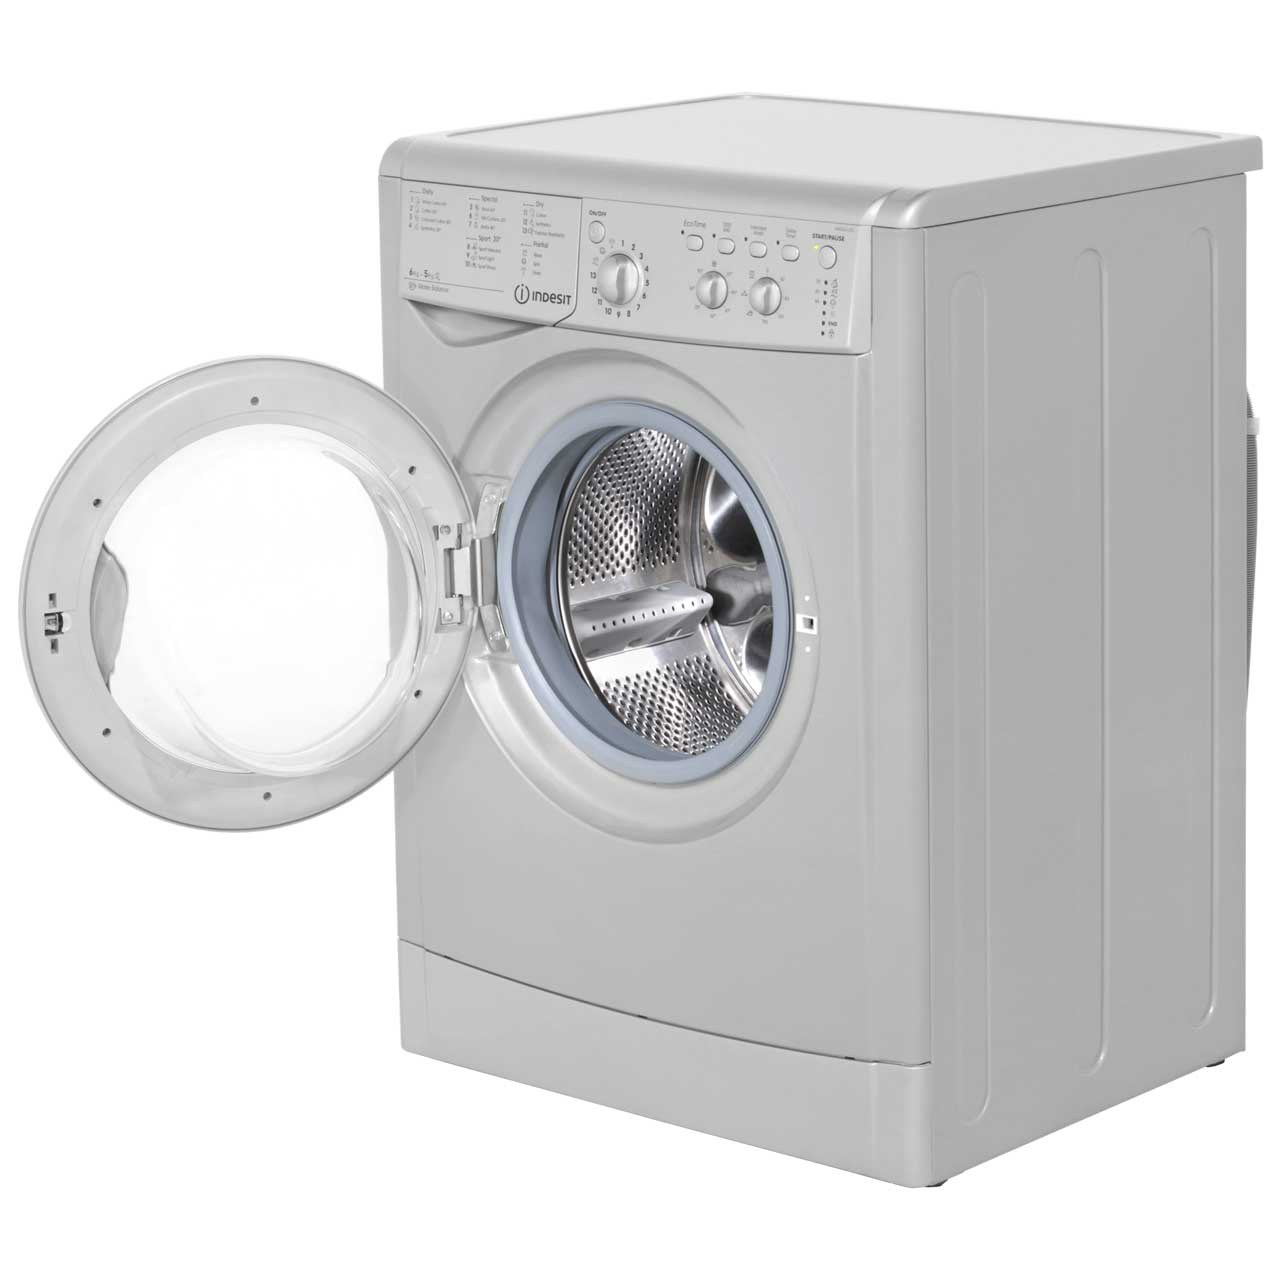 indesit iwdc6125 eco time free standing 6kg washer dryer white new from ao 8007842625059 ebay. Black Bedroom Furniture Sets. Home Design Ideas